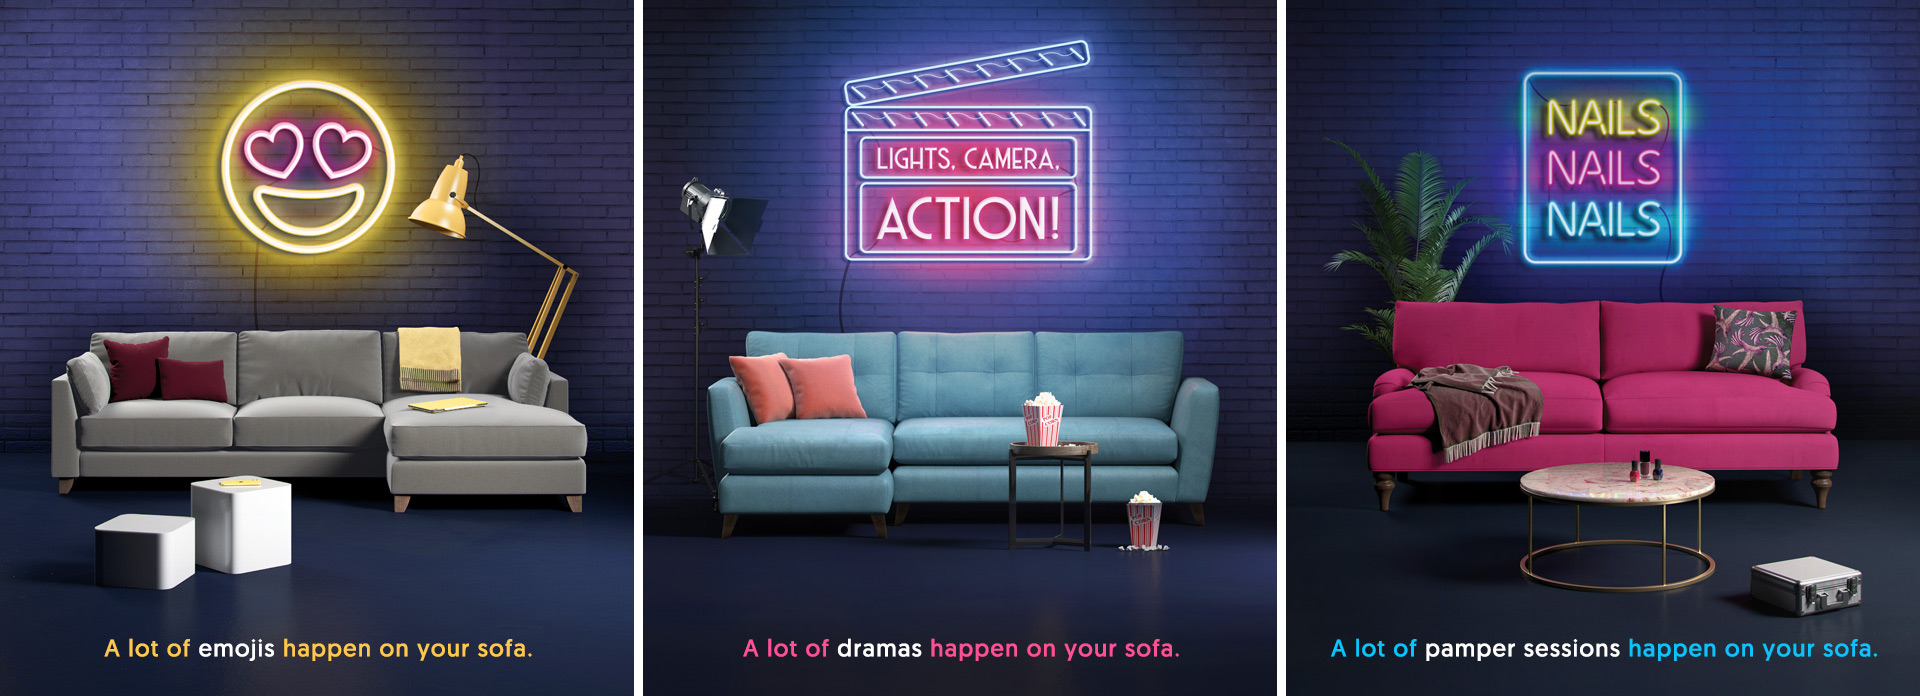 A lot of life happens on your sofa